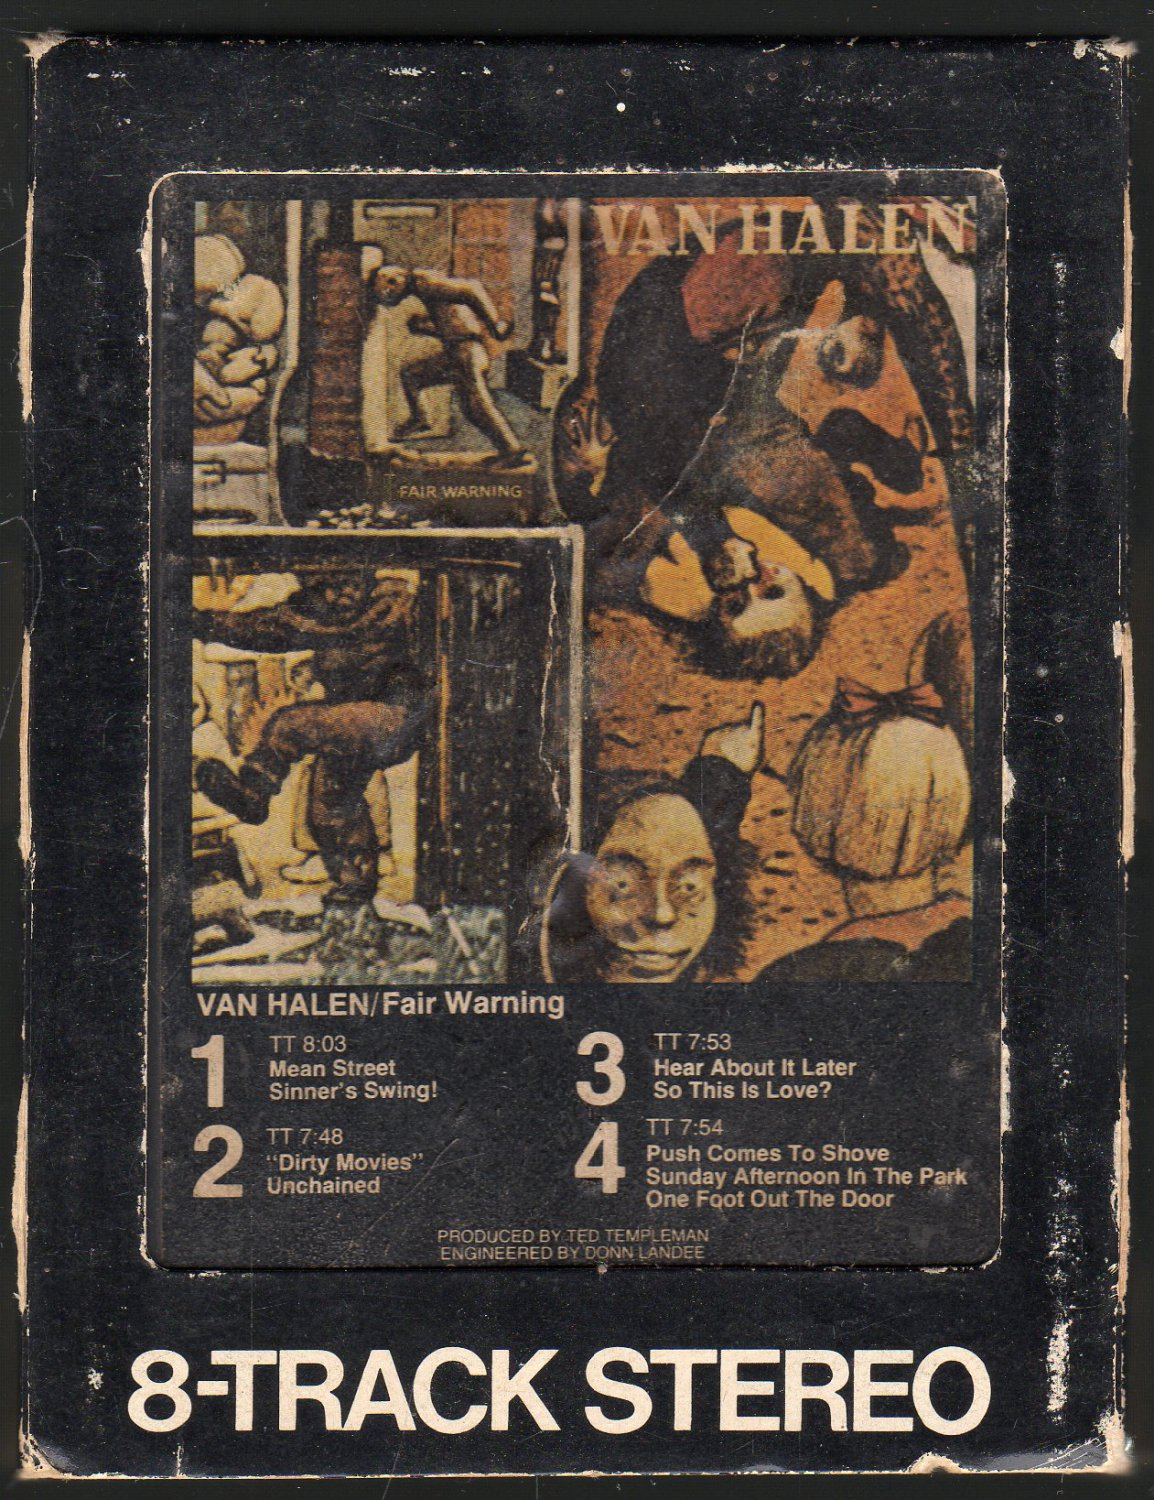 Van Halen - Fair Warning 1981 WB A18F SOLD 8-TRACK TAPE